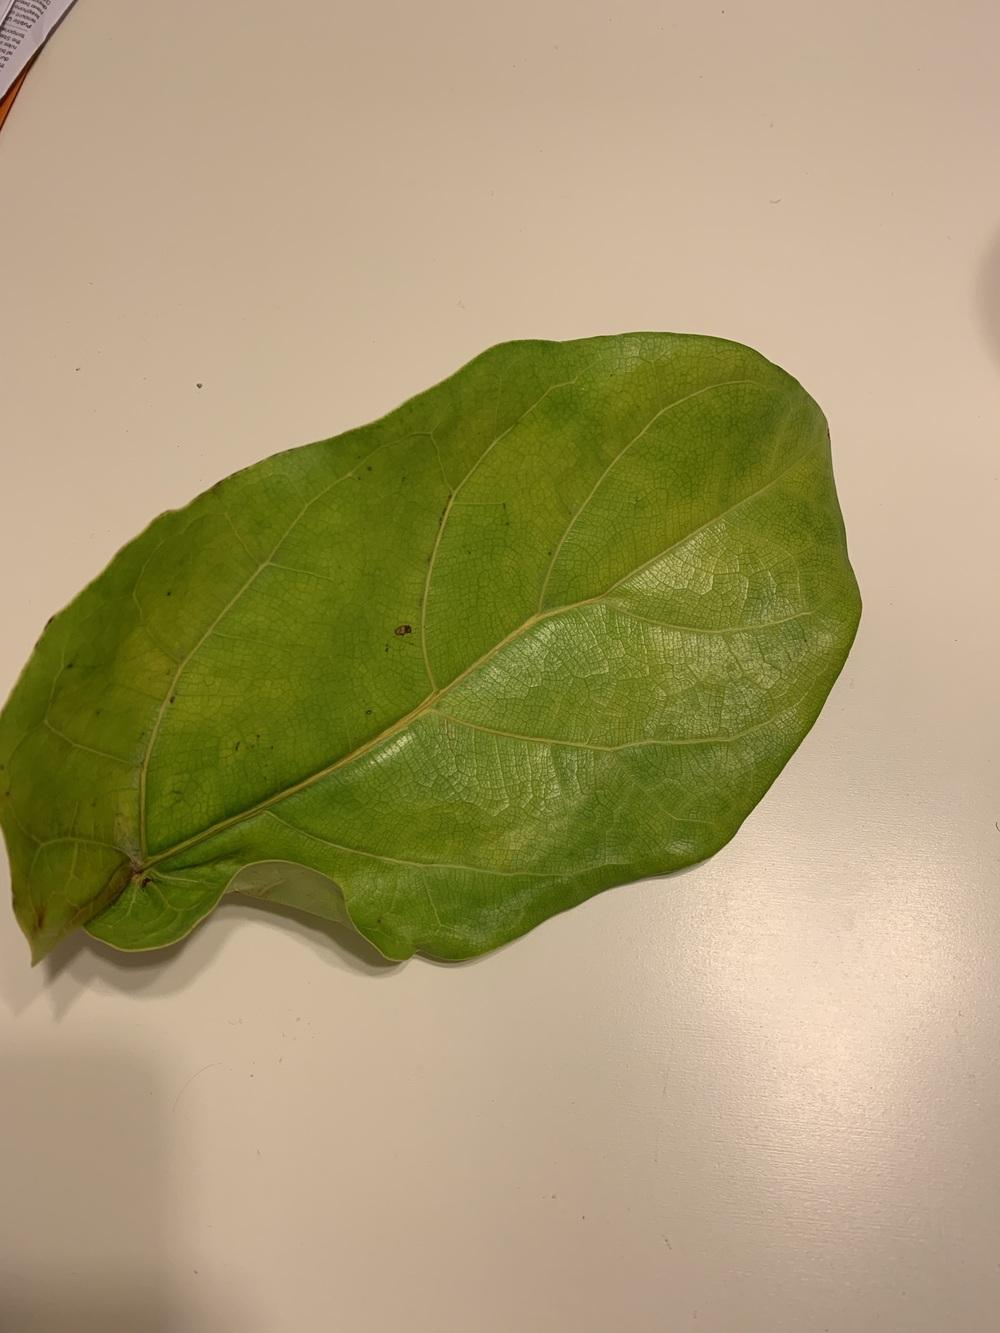 Ask A Question Forum Help Fiddle Leaf Fig Duncan Leaves Turning